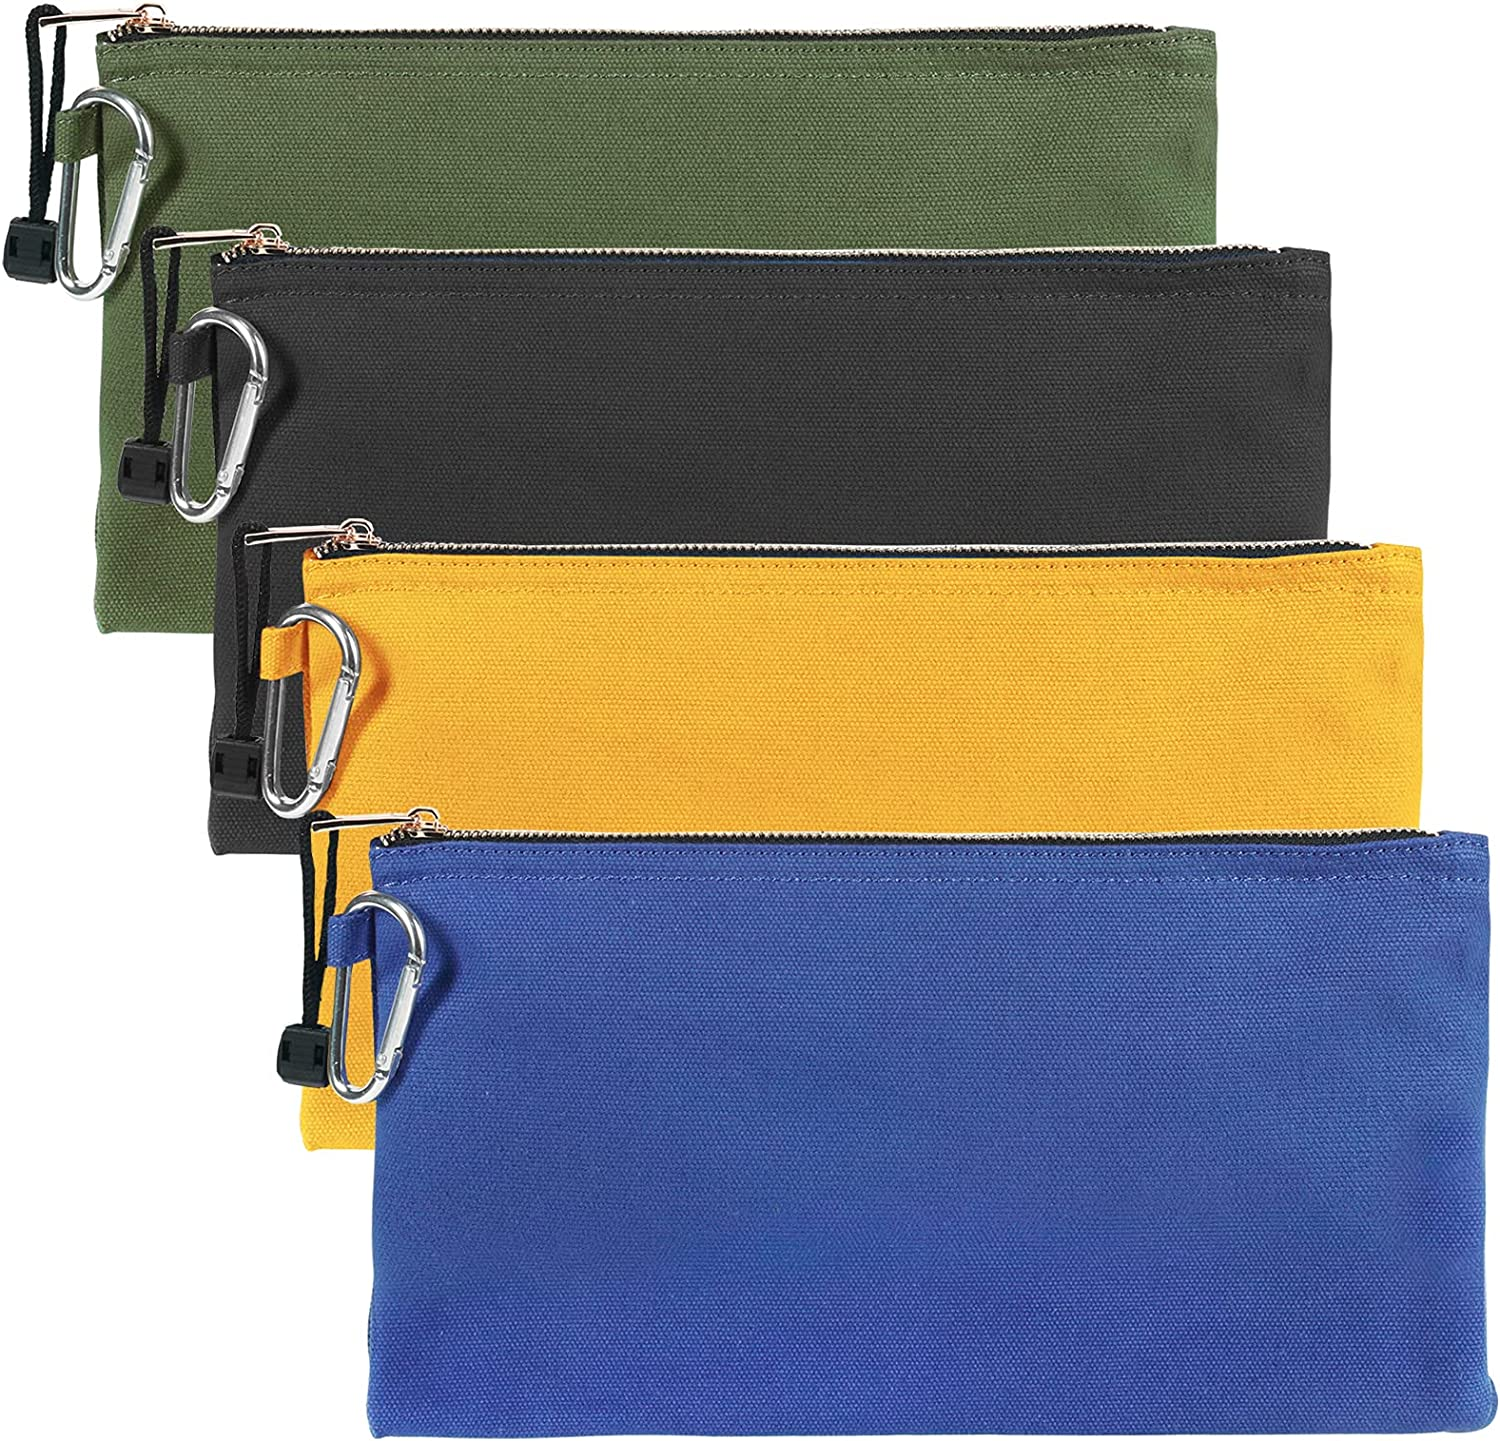 JOINDO Tool Pouch Heavy Nashville-Davidson Mall Duty Canvas Tools Philadelphia Mall with Zippe Smooth Bag